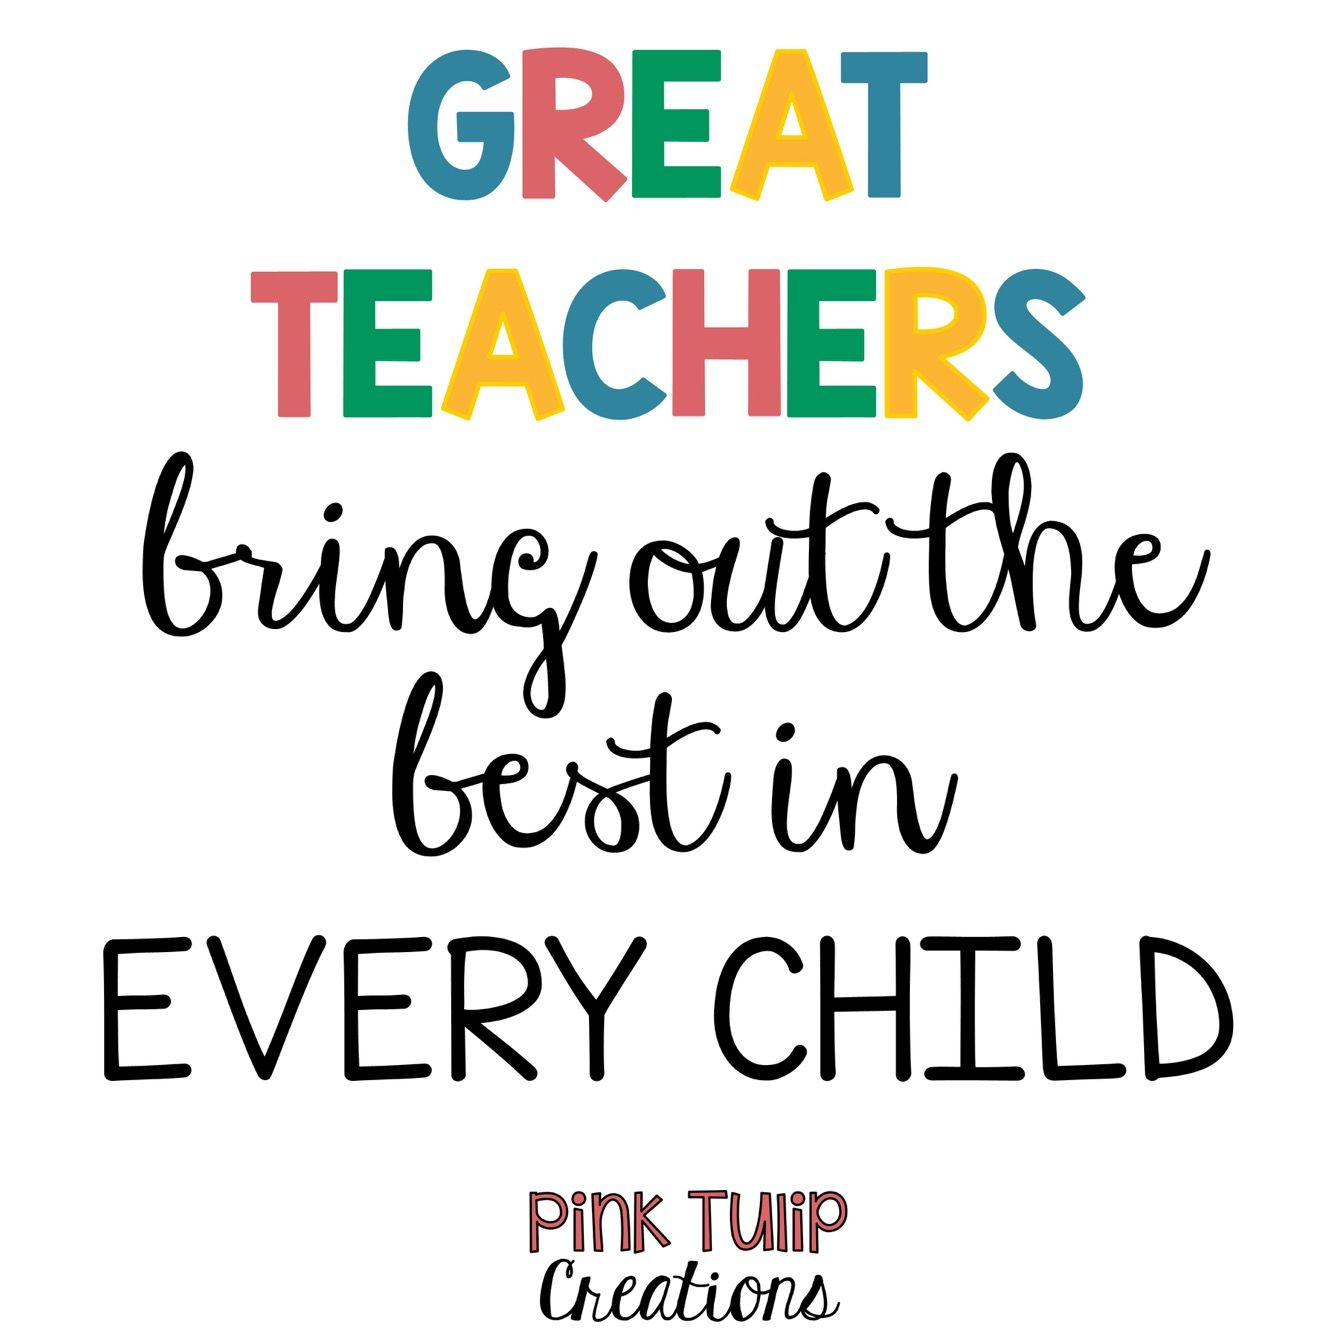 Great teachers bring out the best in every child. teaching